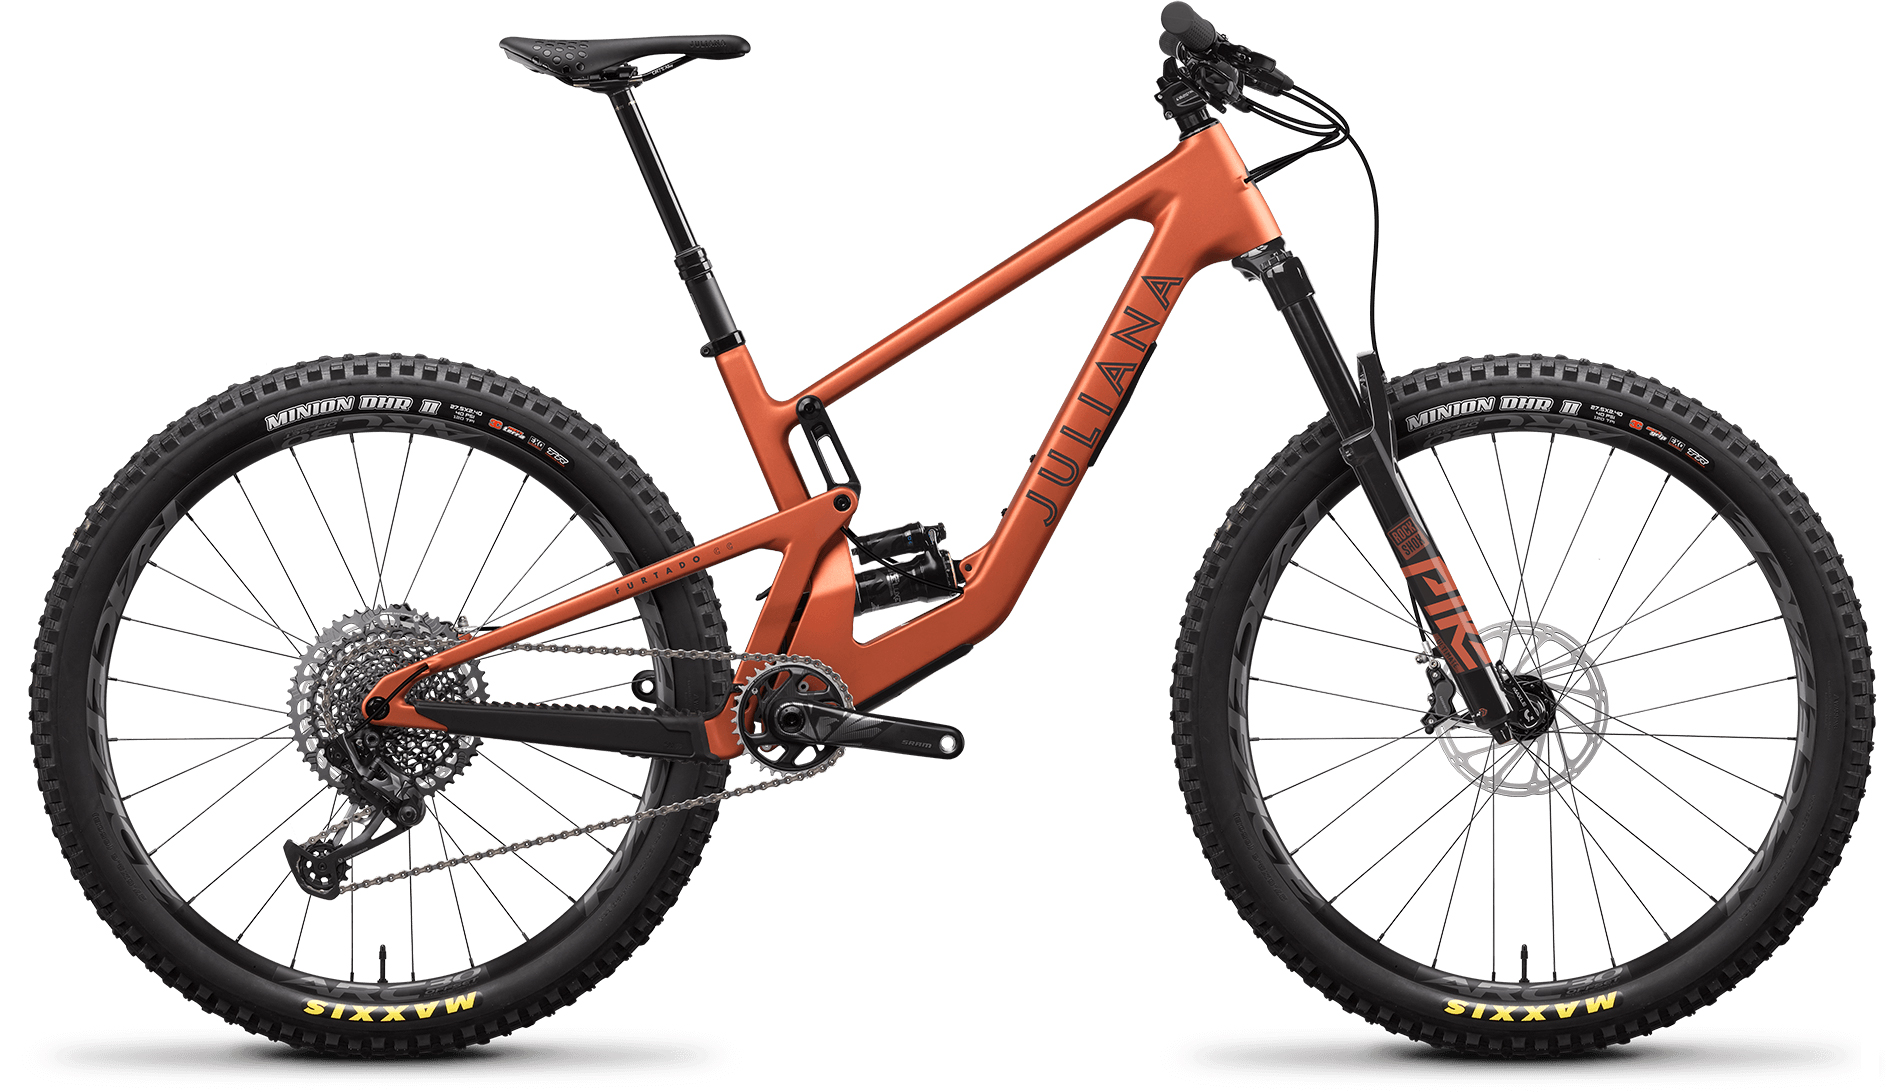 2021 Juliana Furtado mountain bike